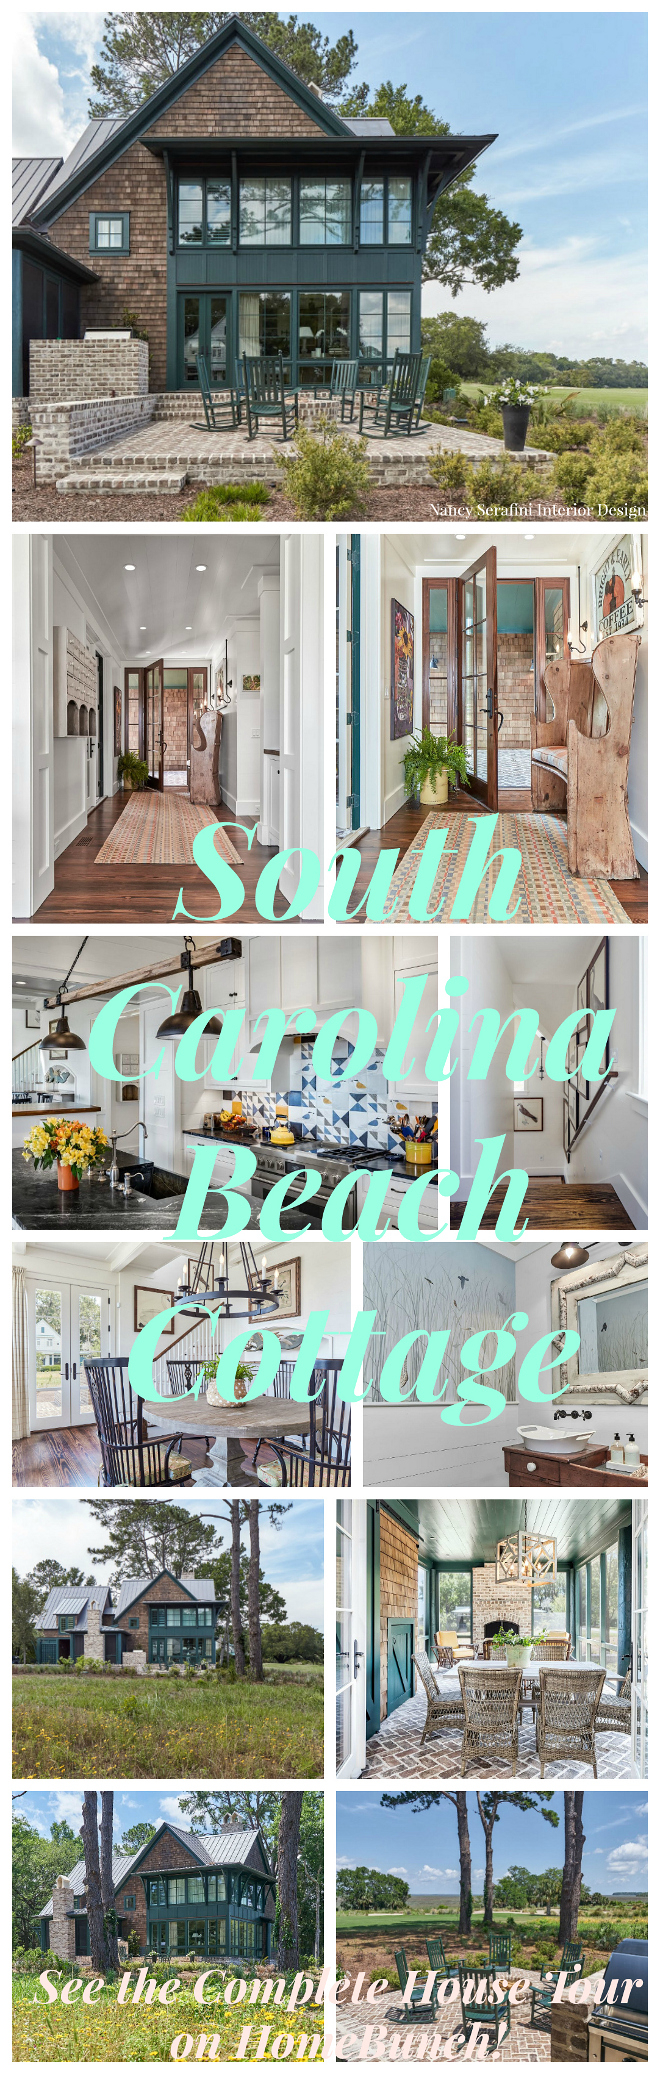 South Carolina Beach Cottage Design.